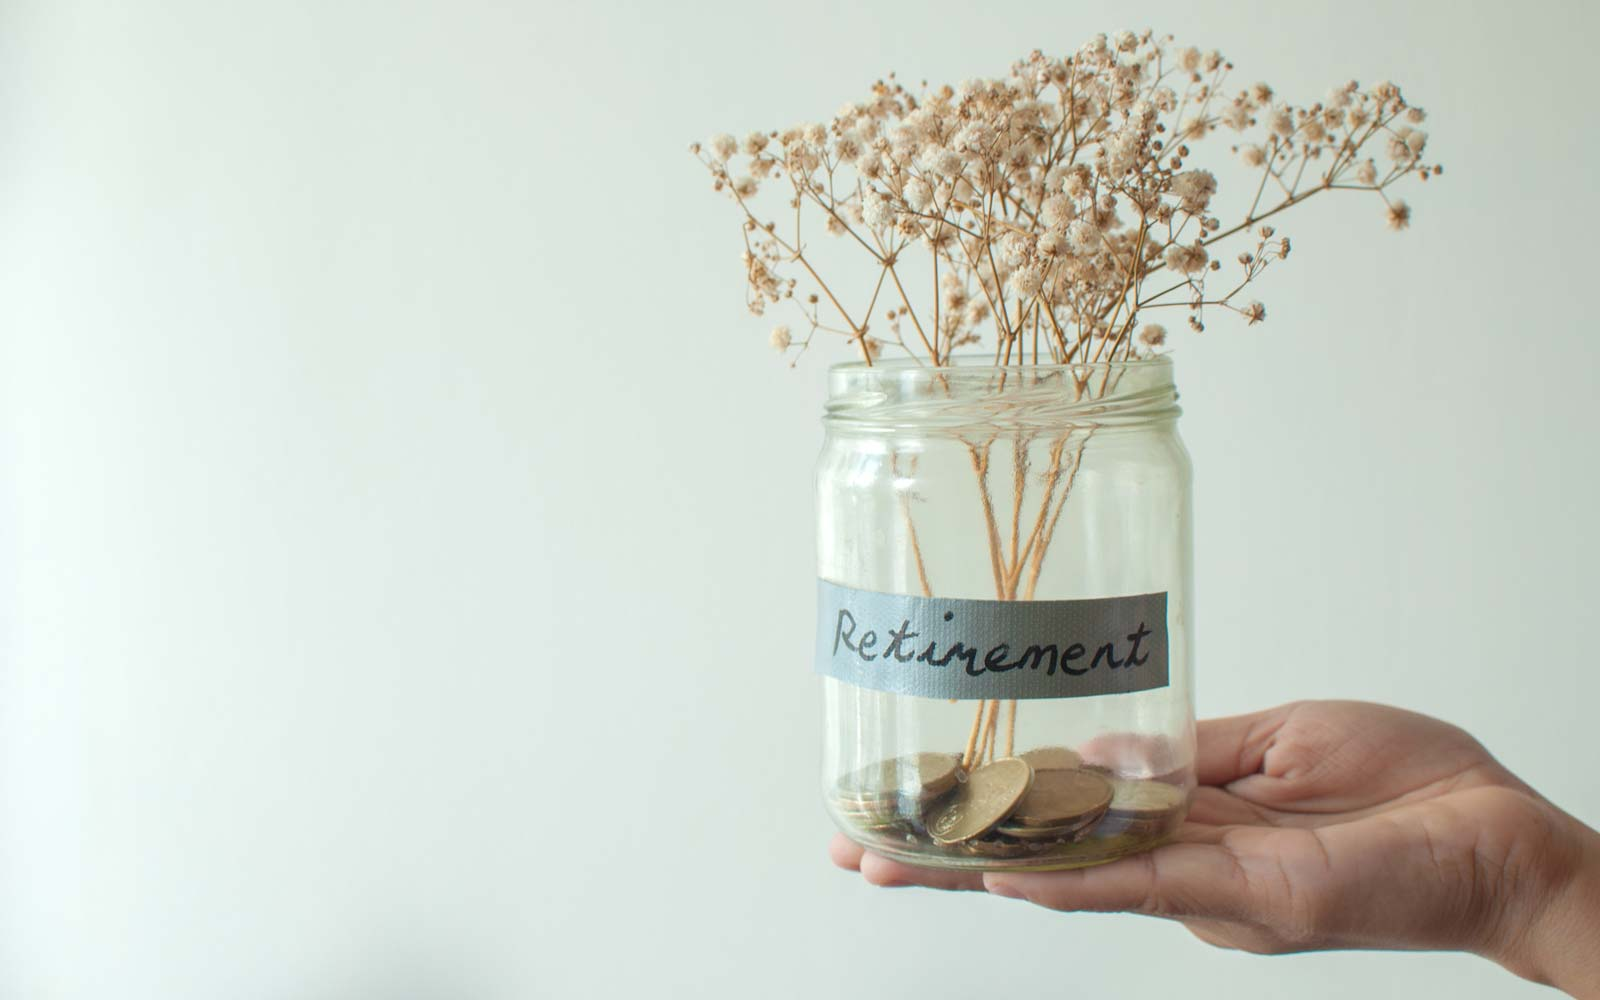 The 2 Things You Need to Cut Back on to Save Money, According to a Woman Who Retired at 38